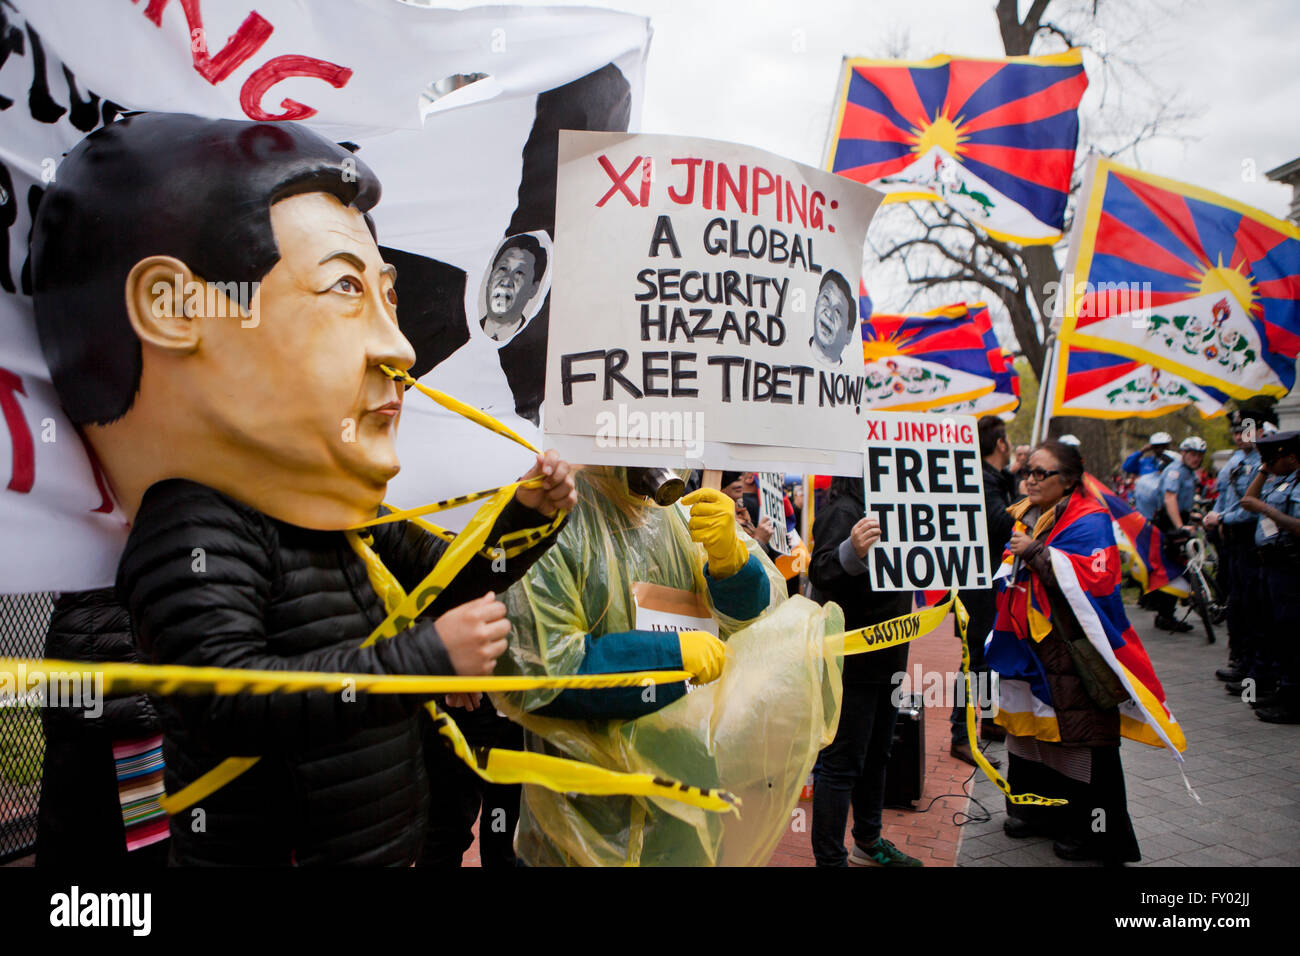 Tibetan-Americans protesting against Chinese president Xi Jinping during his visit to Washington, DC USA - Stock Image